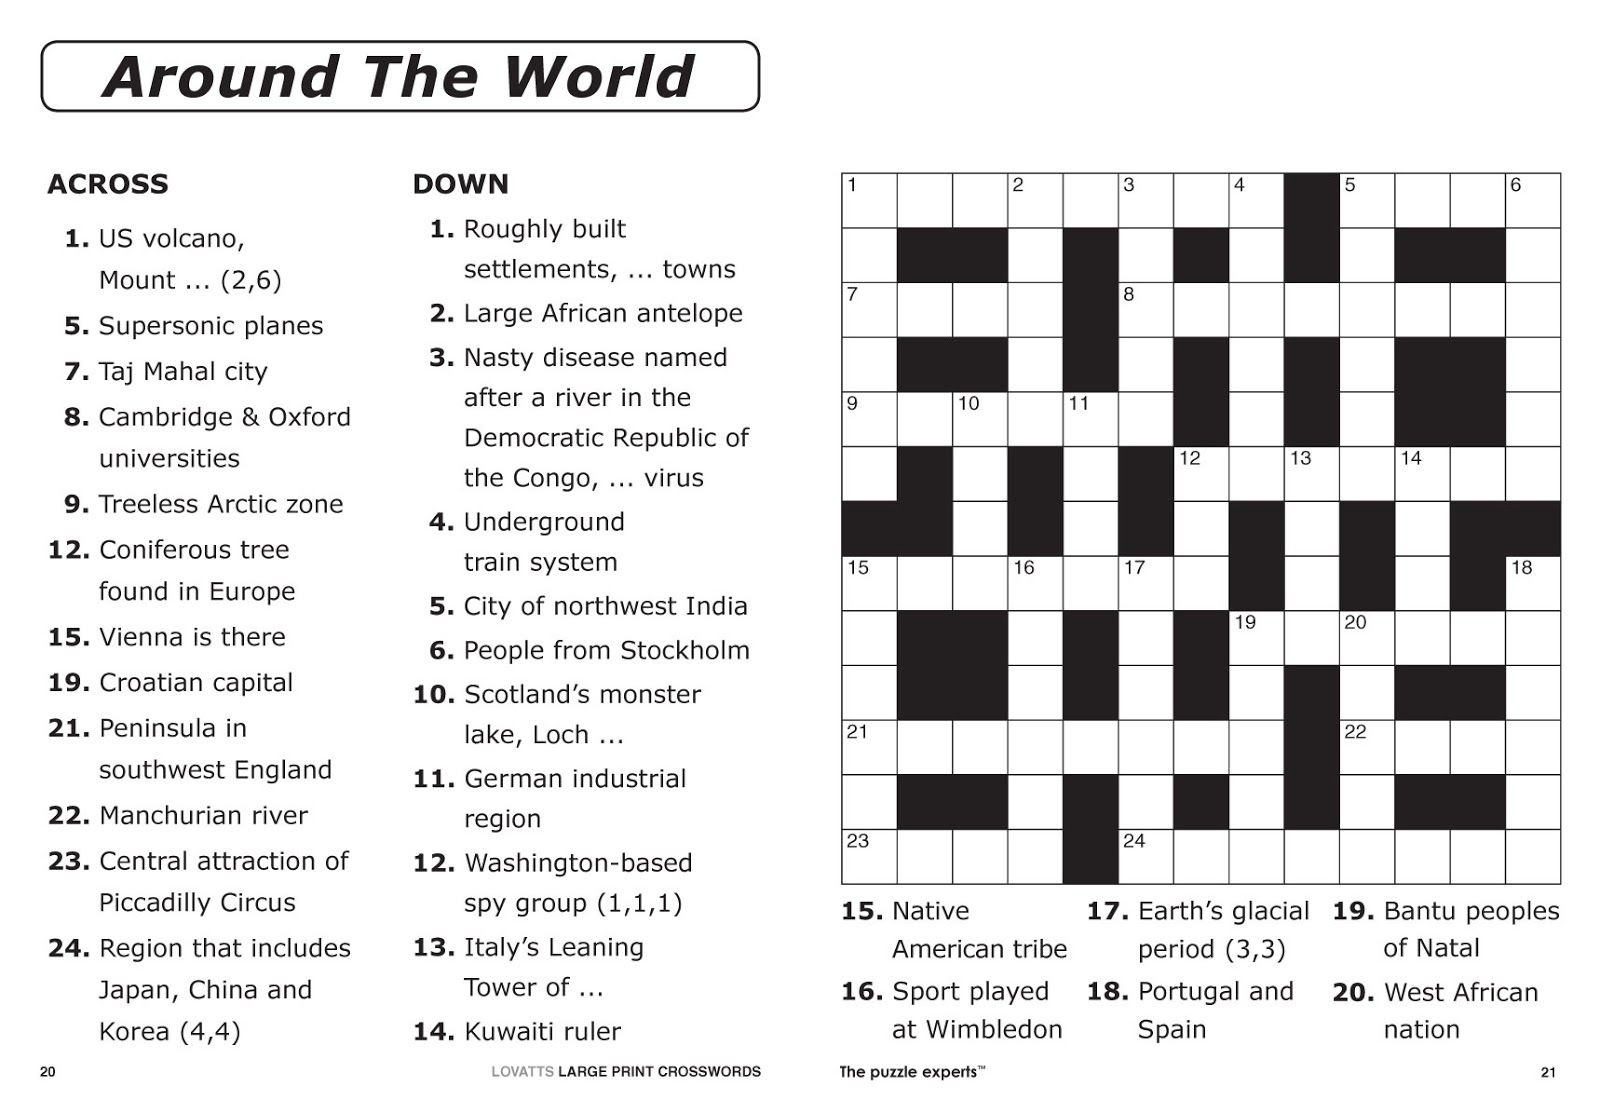 Free Printable Large Print Crossword Puzzles | M3U8 - Free Online Printable Crossword Puzzles